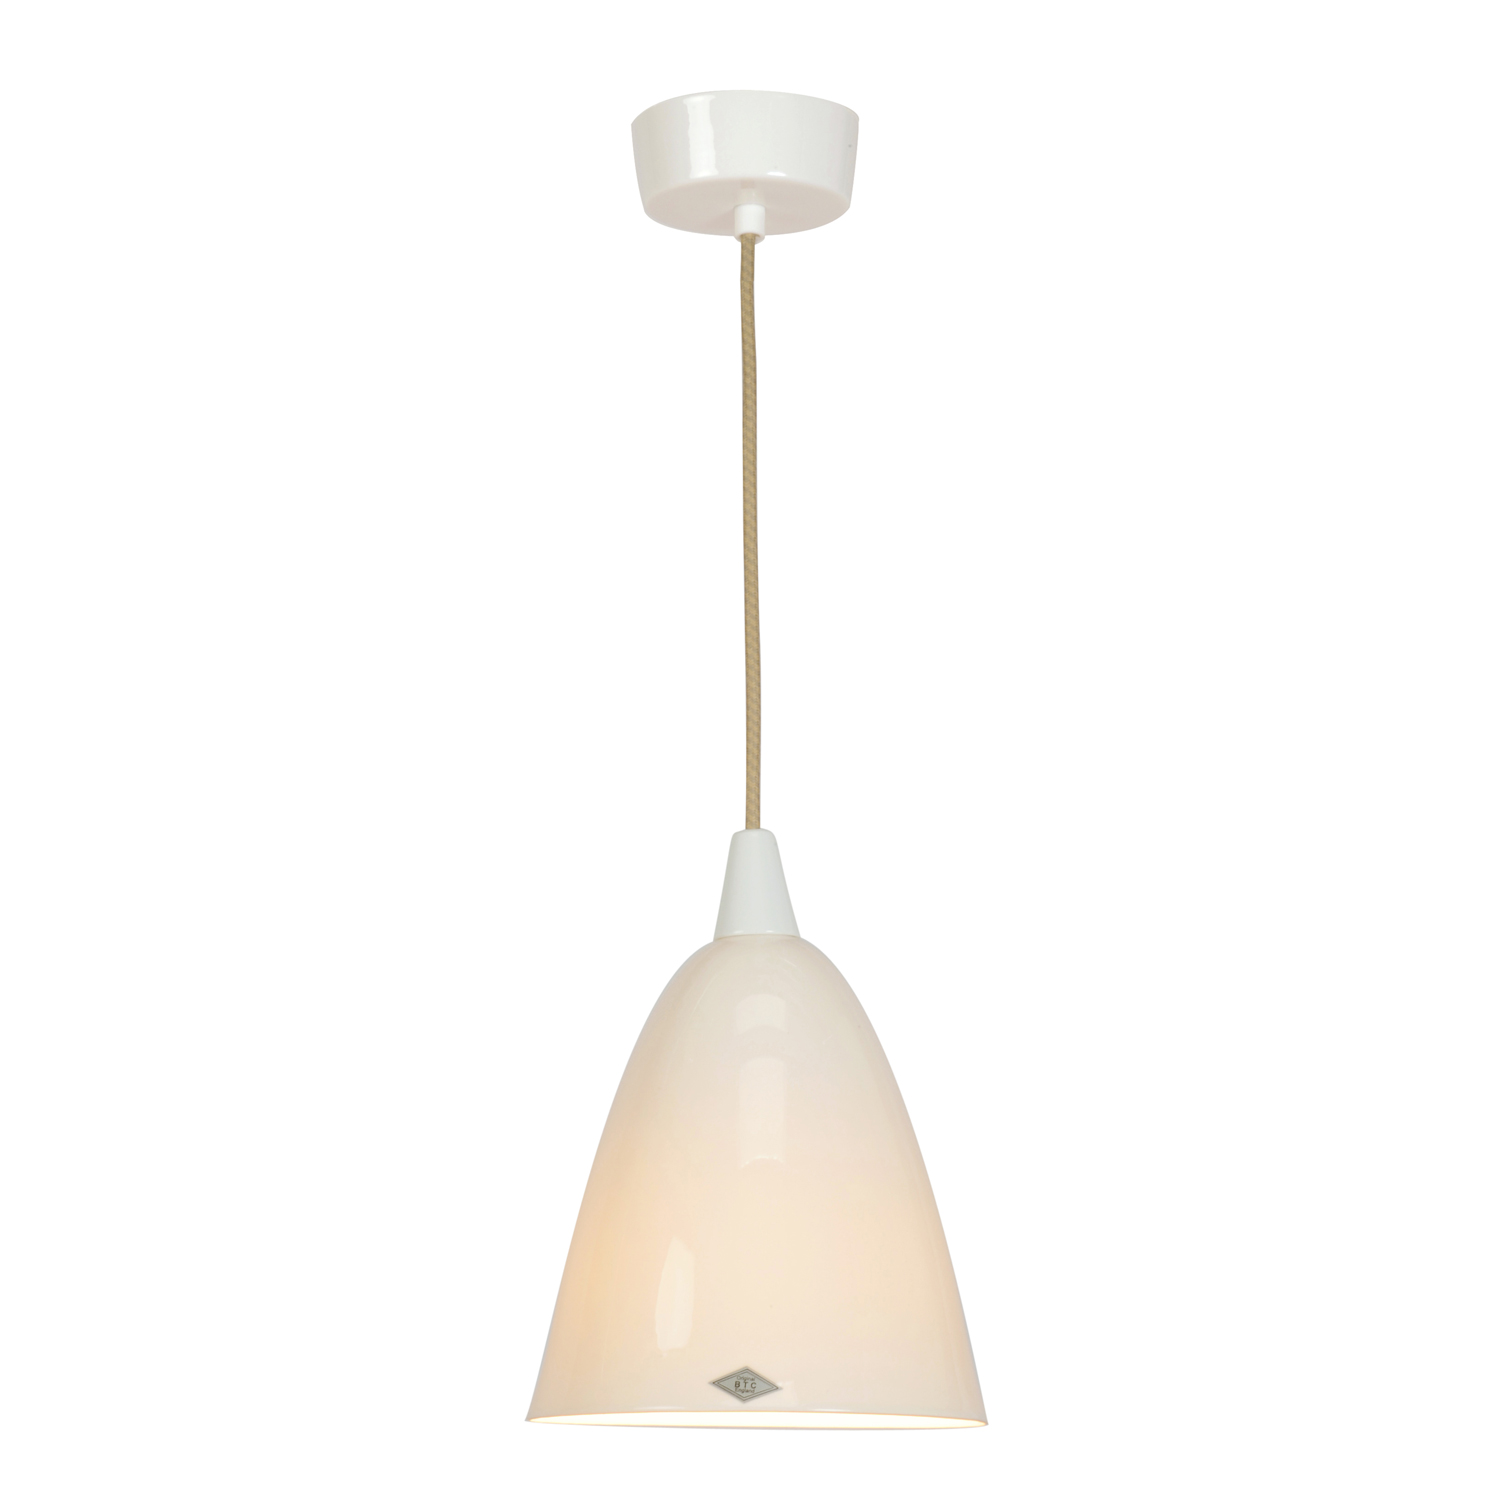 Hector Size 3 Pendant Light, Natural